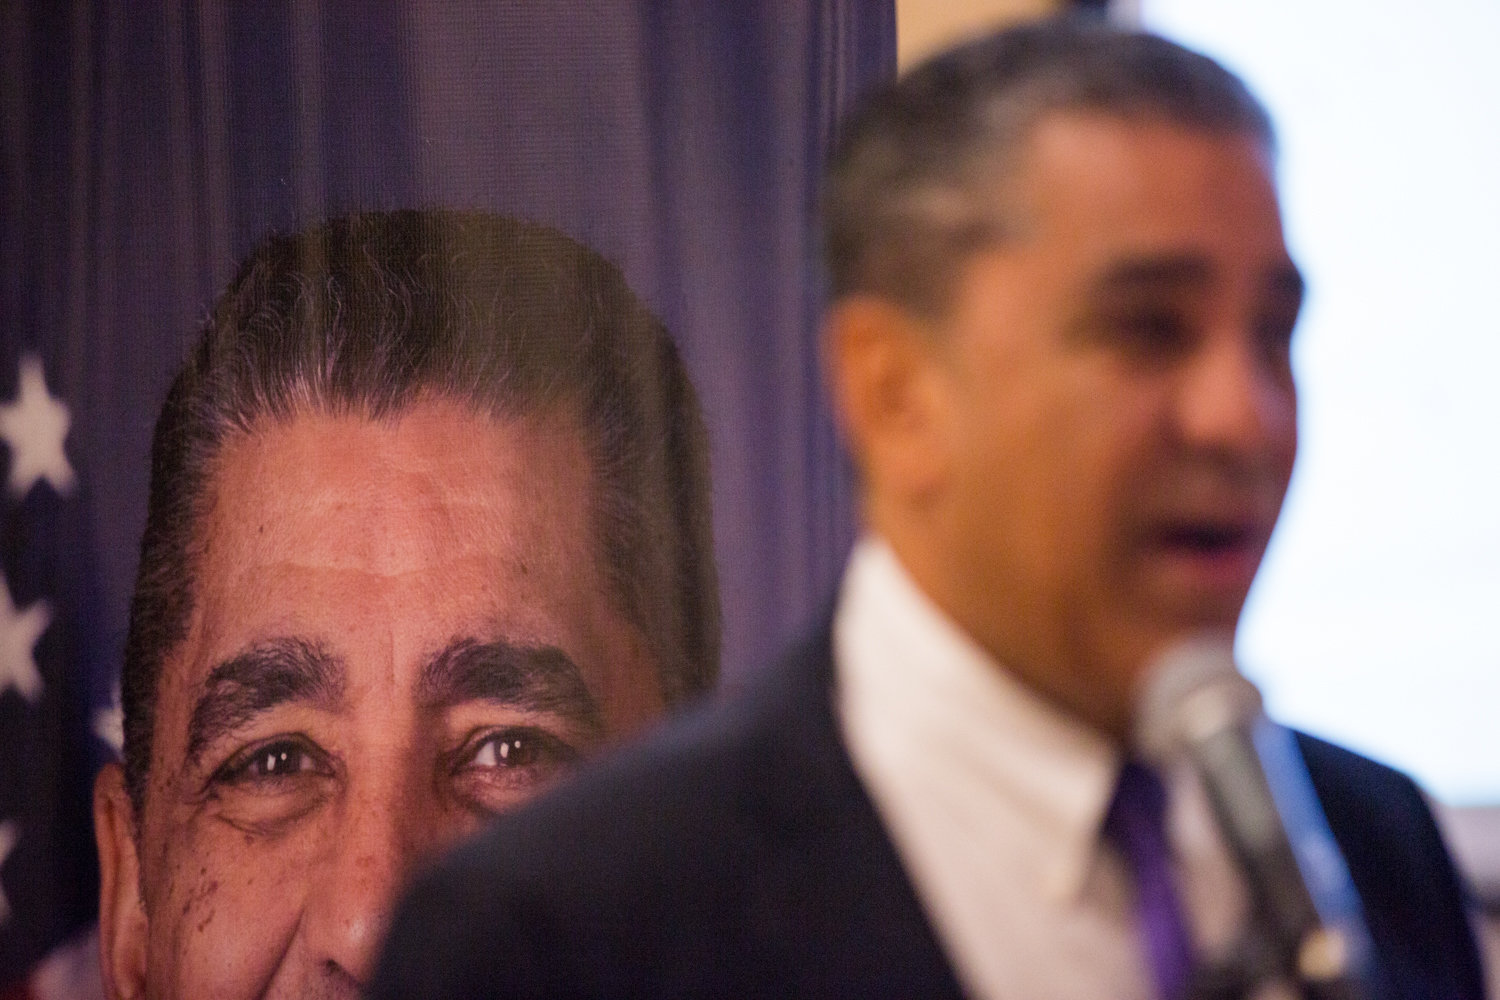 U.S. Rep. Adriano Espaillat explains how the impeachment process works during a forum at the Fort Washington Collegiate Church on Oct. 7. Espaillat is one of many congressional members supporting the impeachment inquiry into Donald Trump.